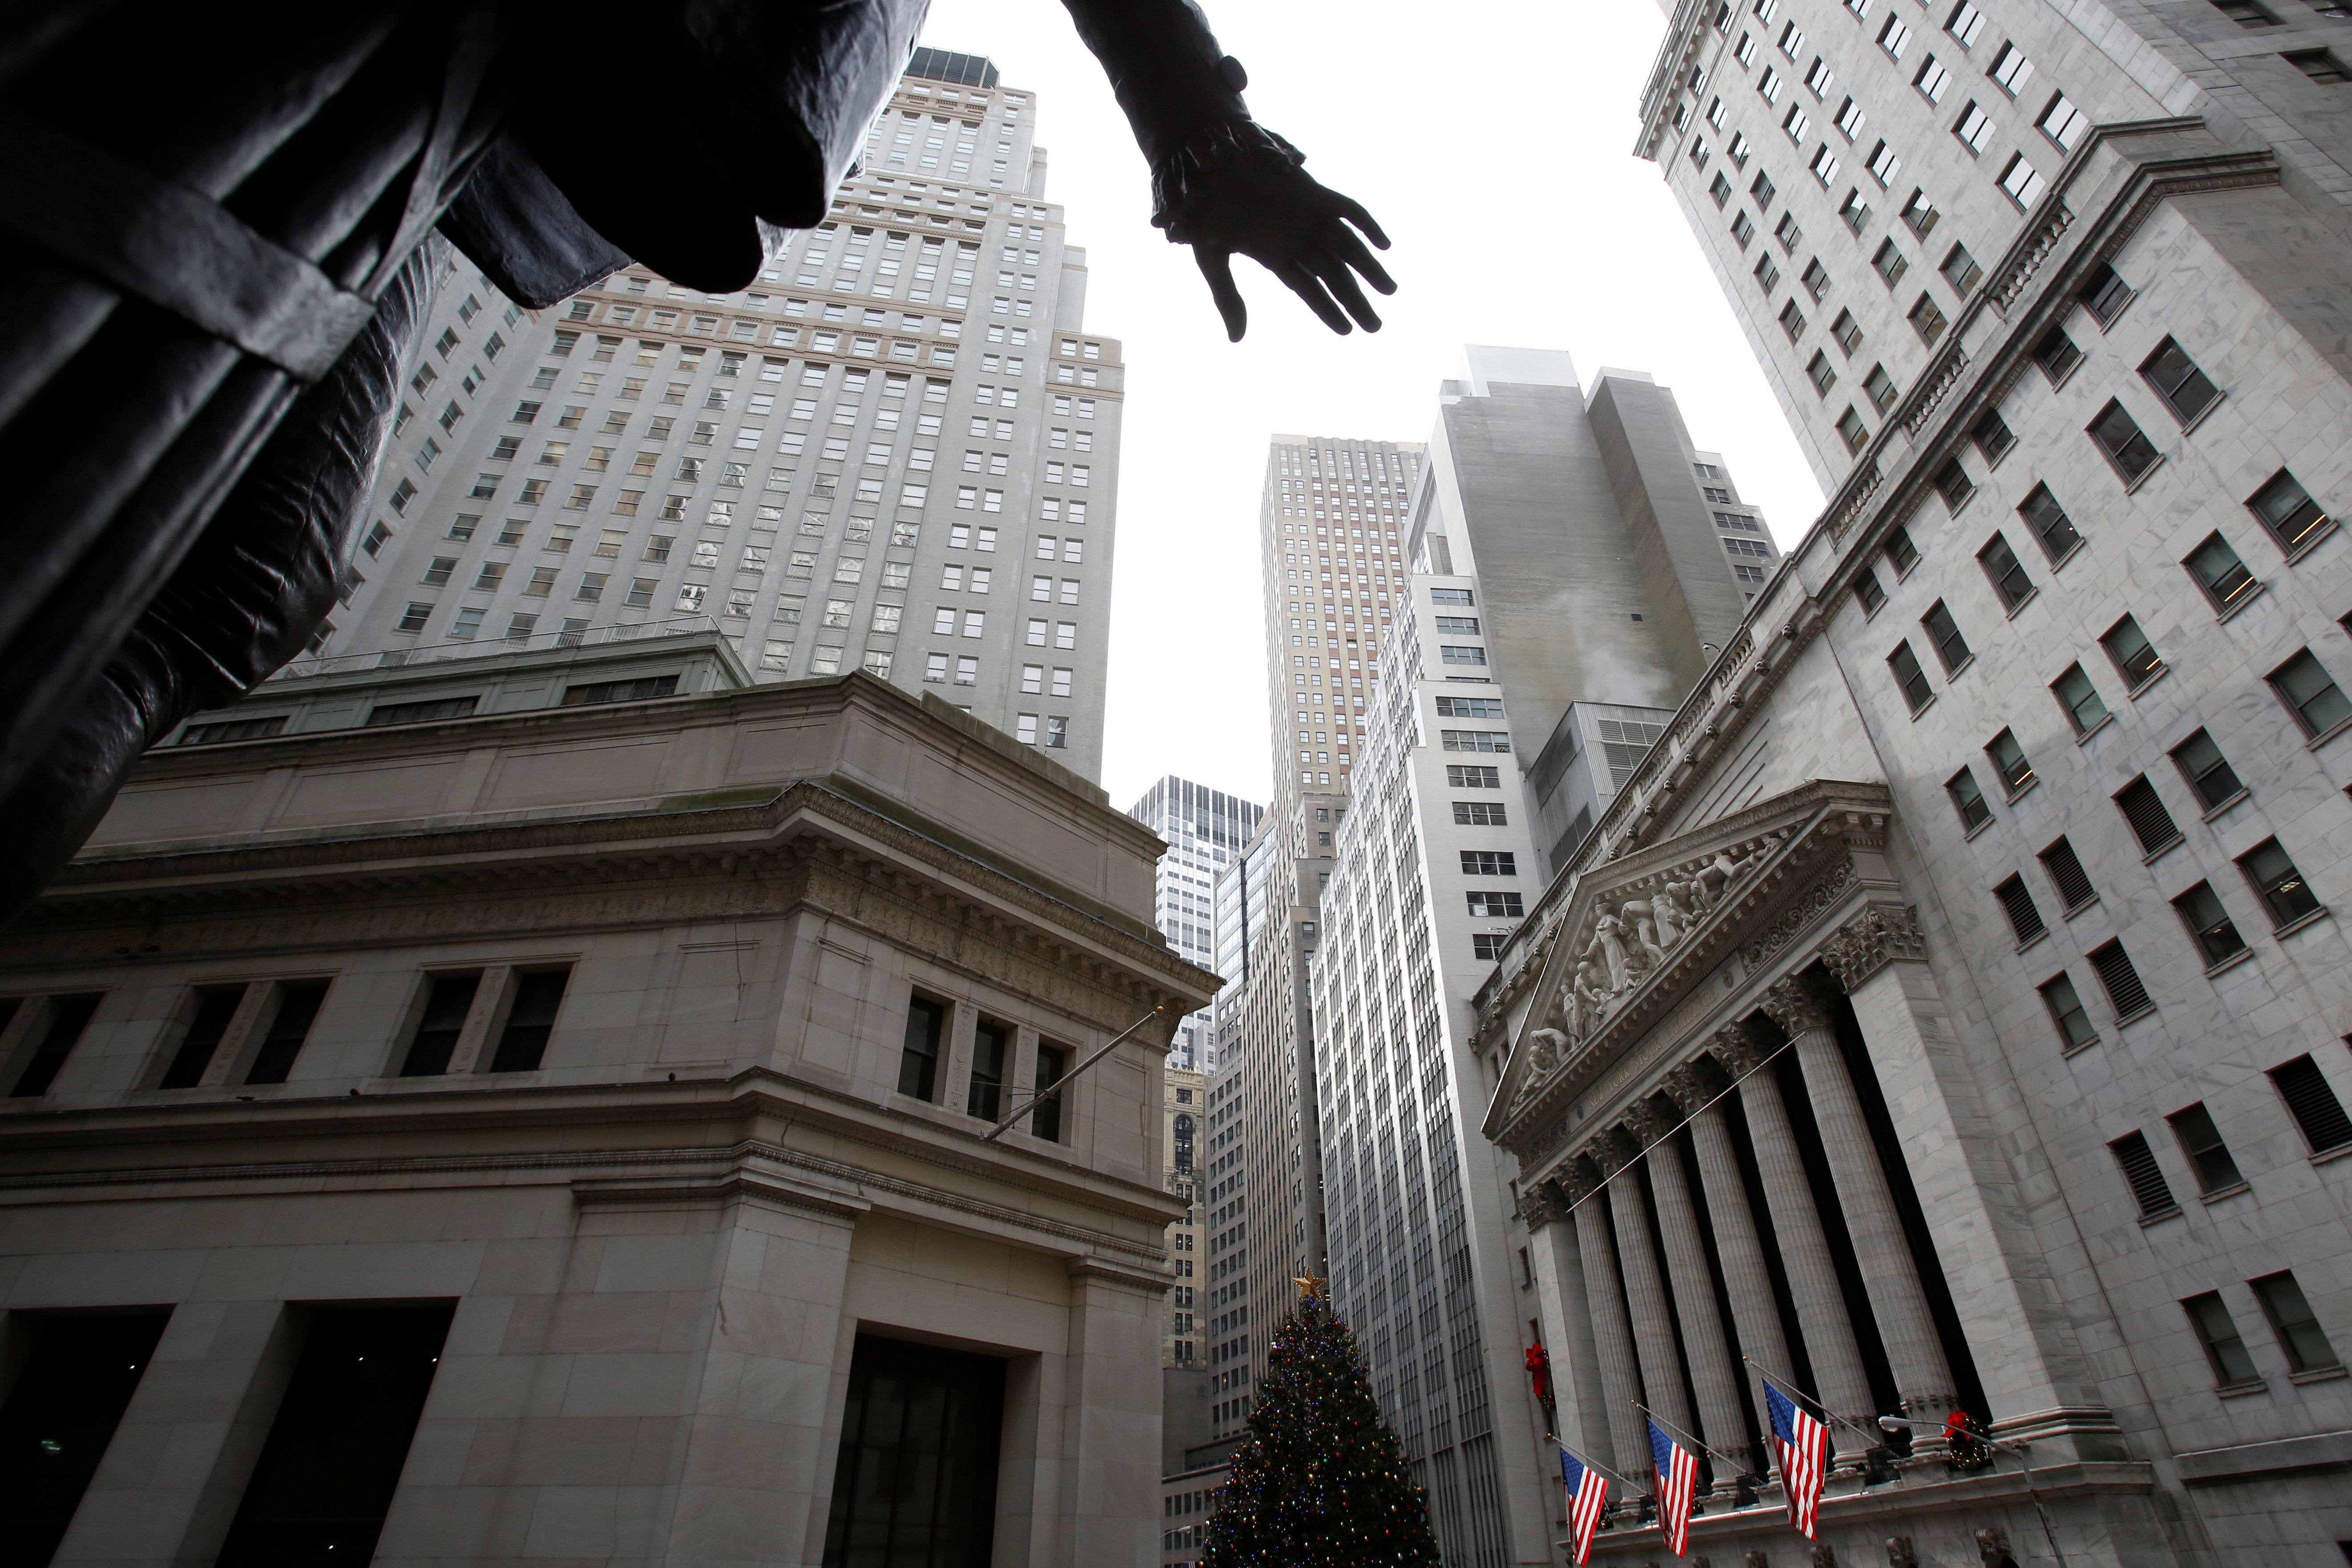 The New York Stock Exchange in New York City. Traditional ways of economic thinking aren't sufficient...